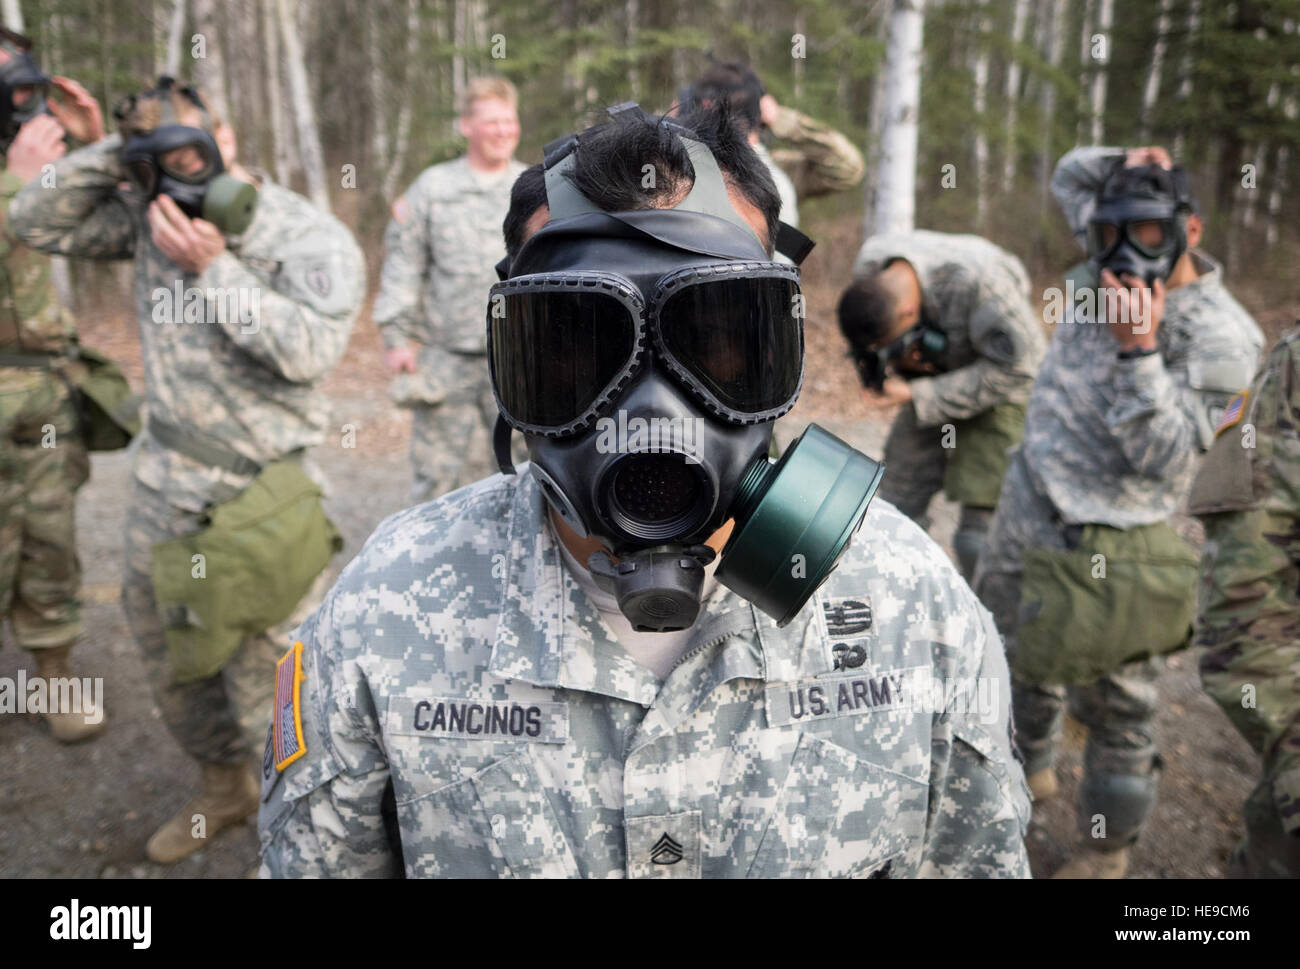 U.S. Army Staff Sgt. Henry Cancinos, assigned to Bravo Troop, 1st Squadron (Airborne), 40th Cavalry Regiment, 4th Stock Photo